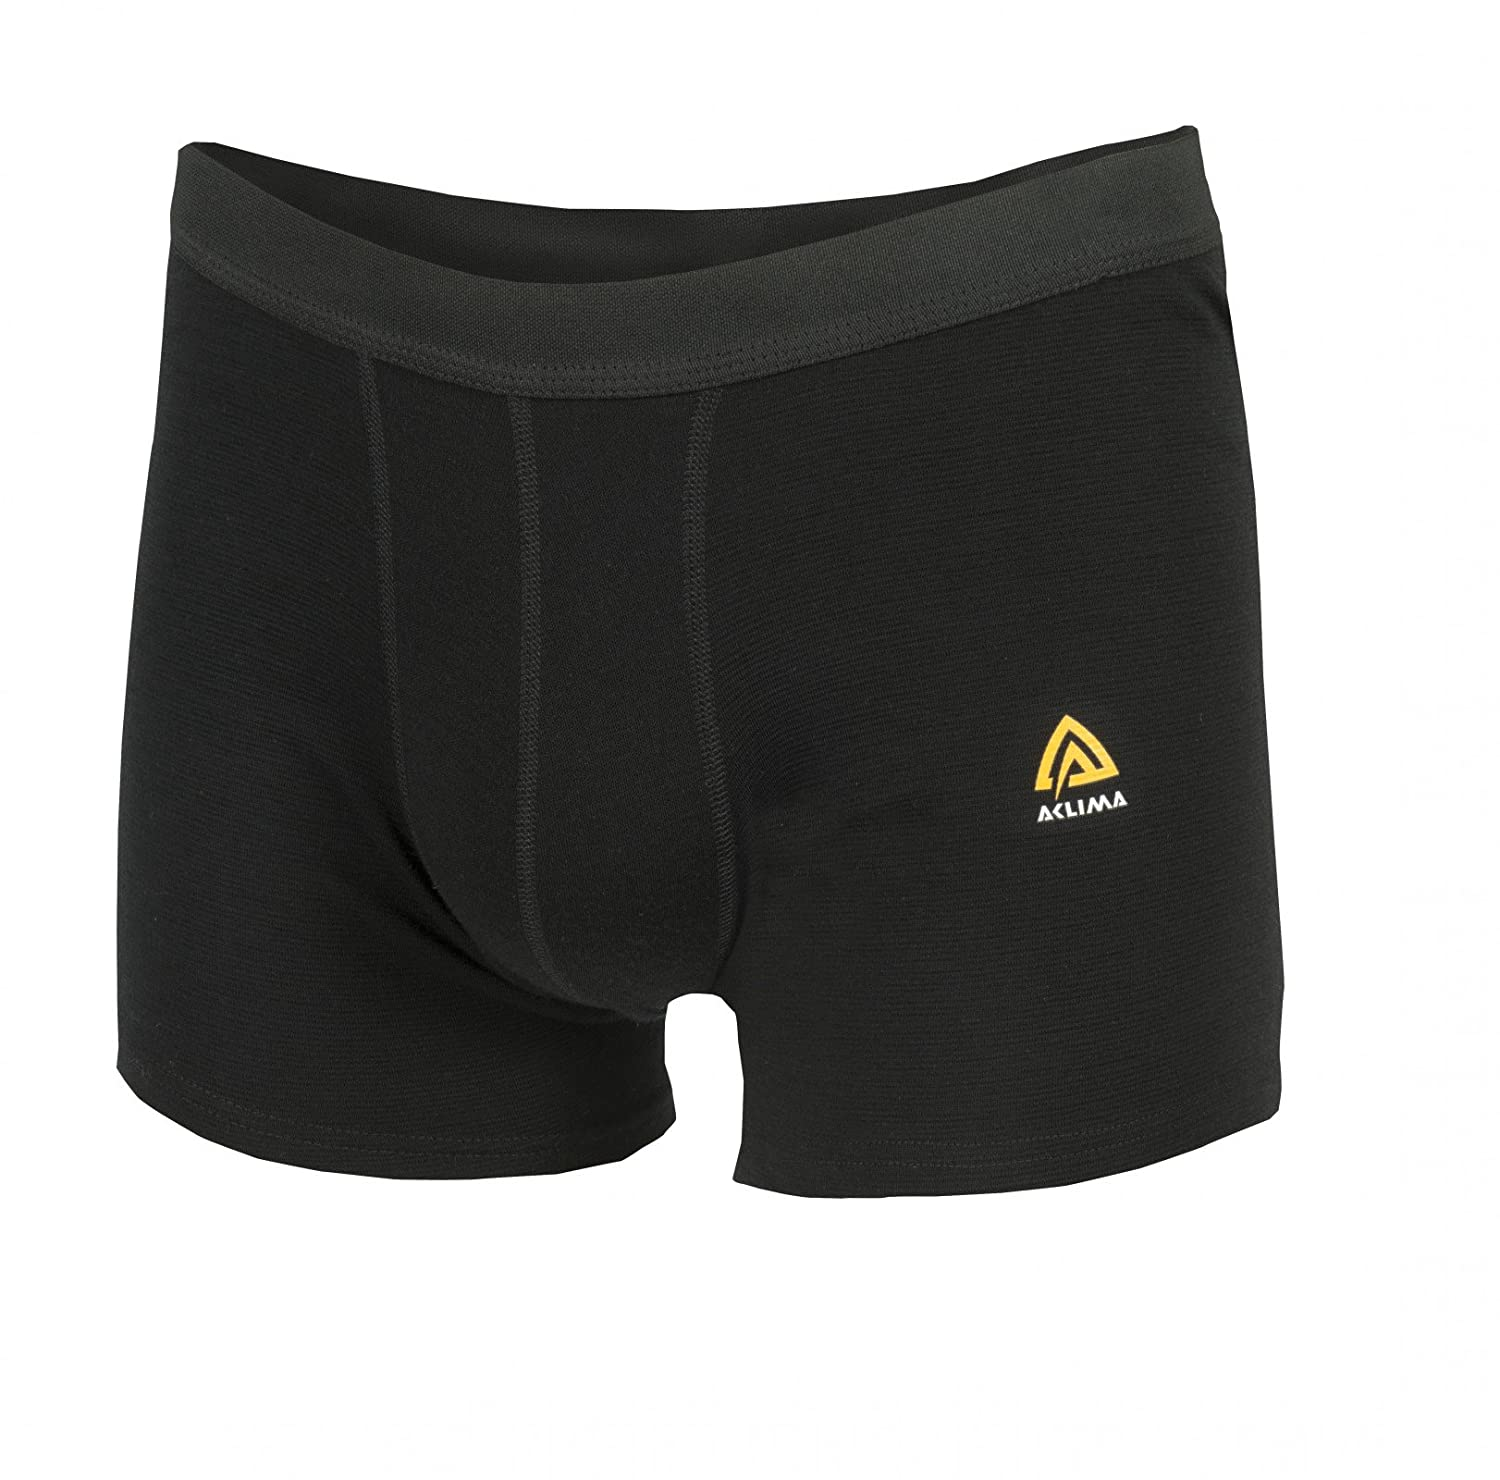 Aclima WarmWool Men& 039;s Shorts